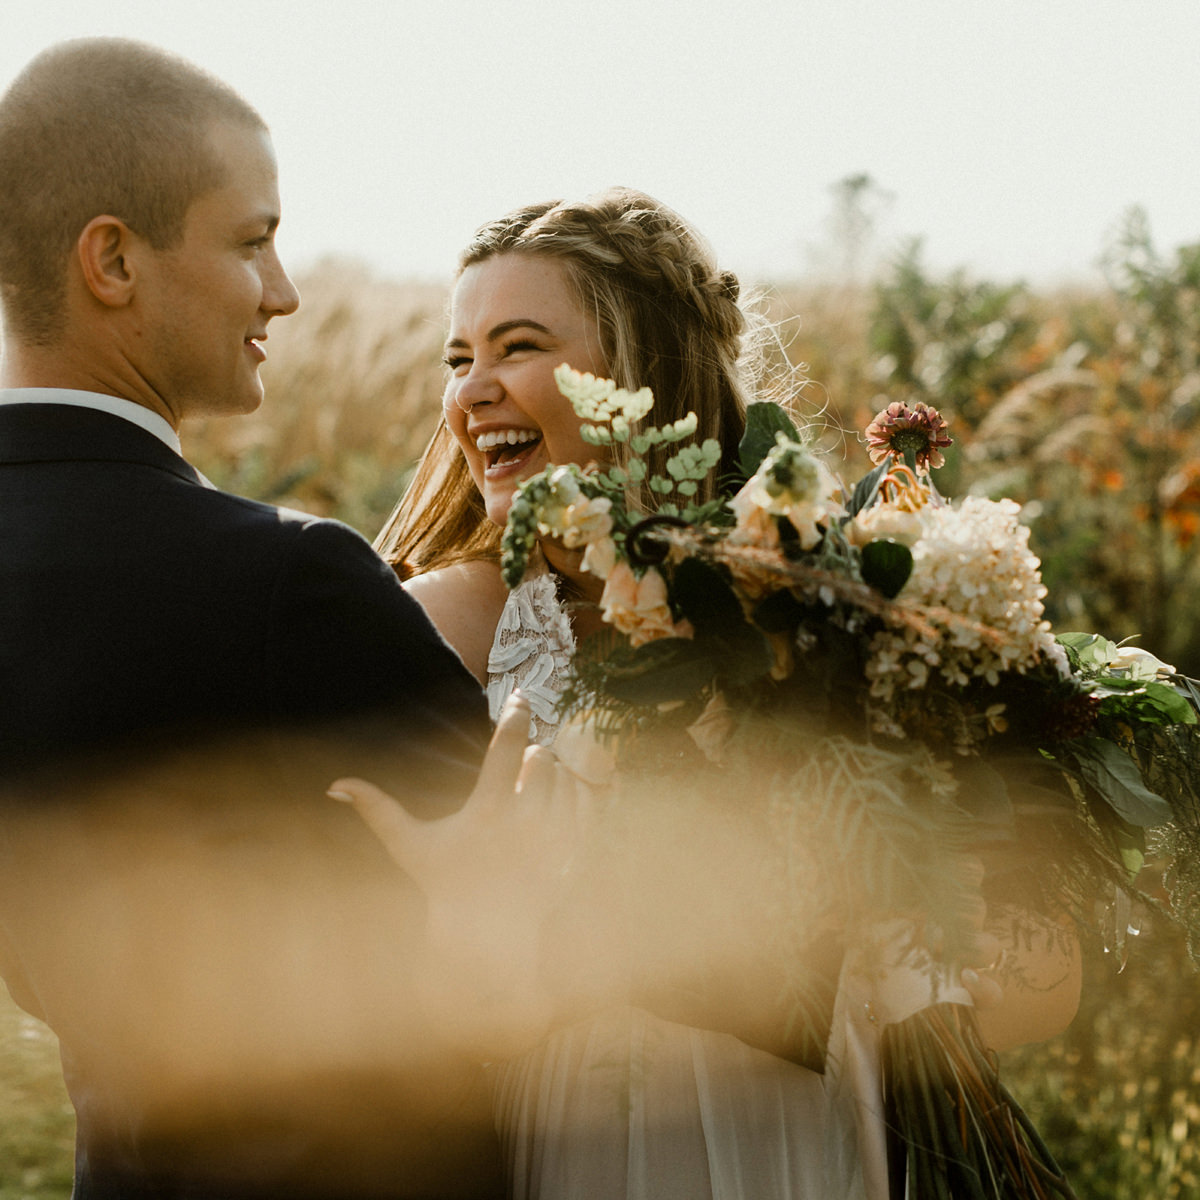 wedding PRESET pack + editing class  Everything you need to edit a full wedding day. Over 5 hours of videos, and 10 presets.